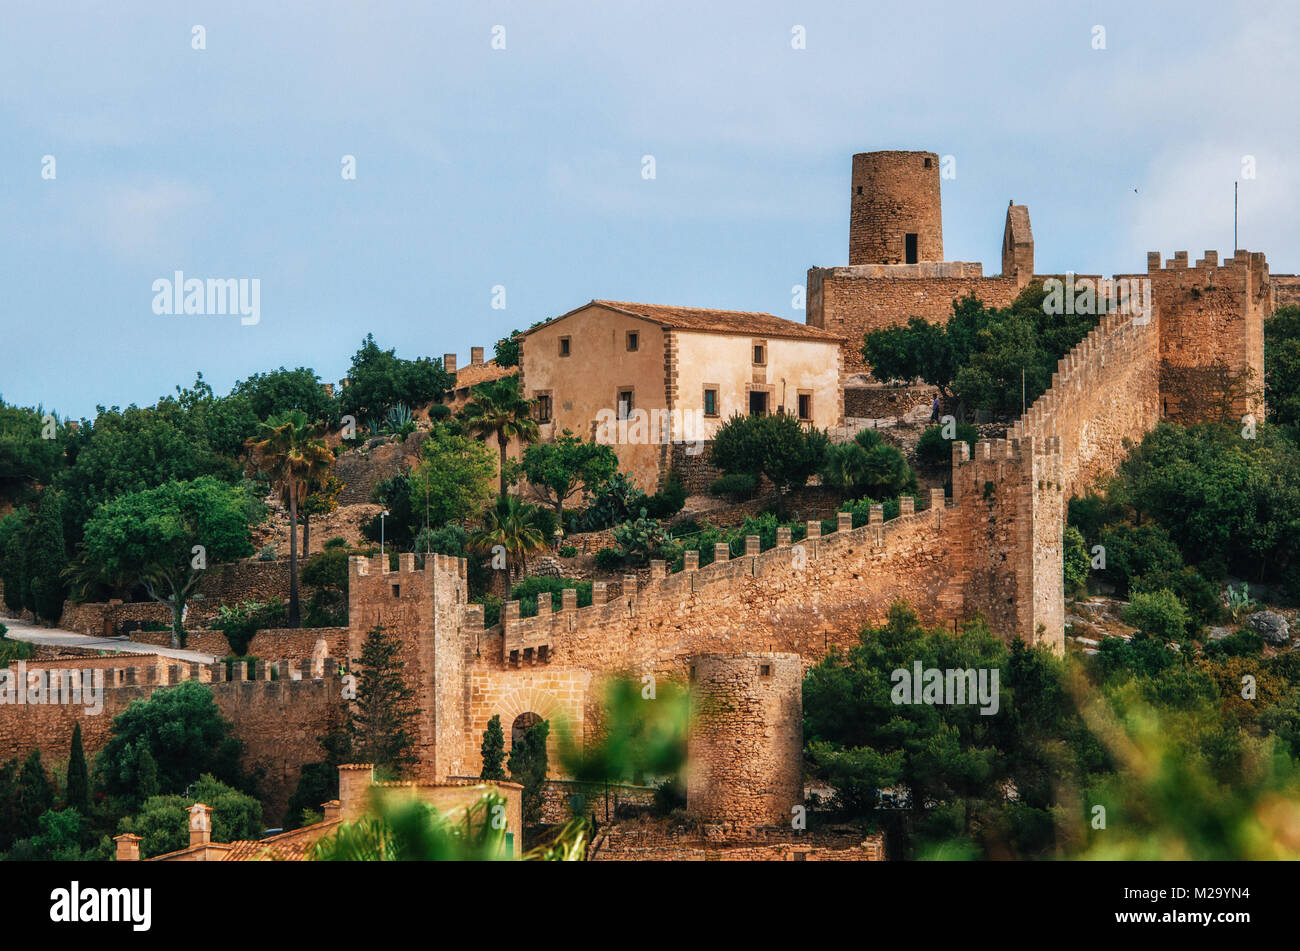 Capdepera castle on green hill in Mallorca island, Spain. Beautiful landscape with medieval architecture in Majorca - Stock Image